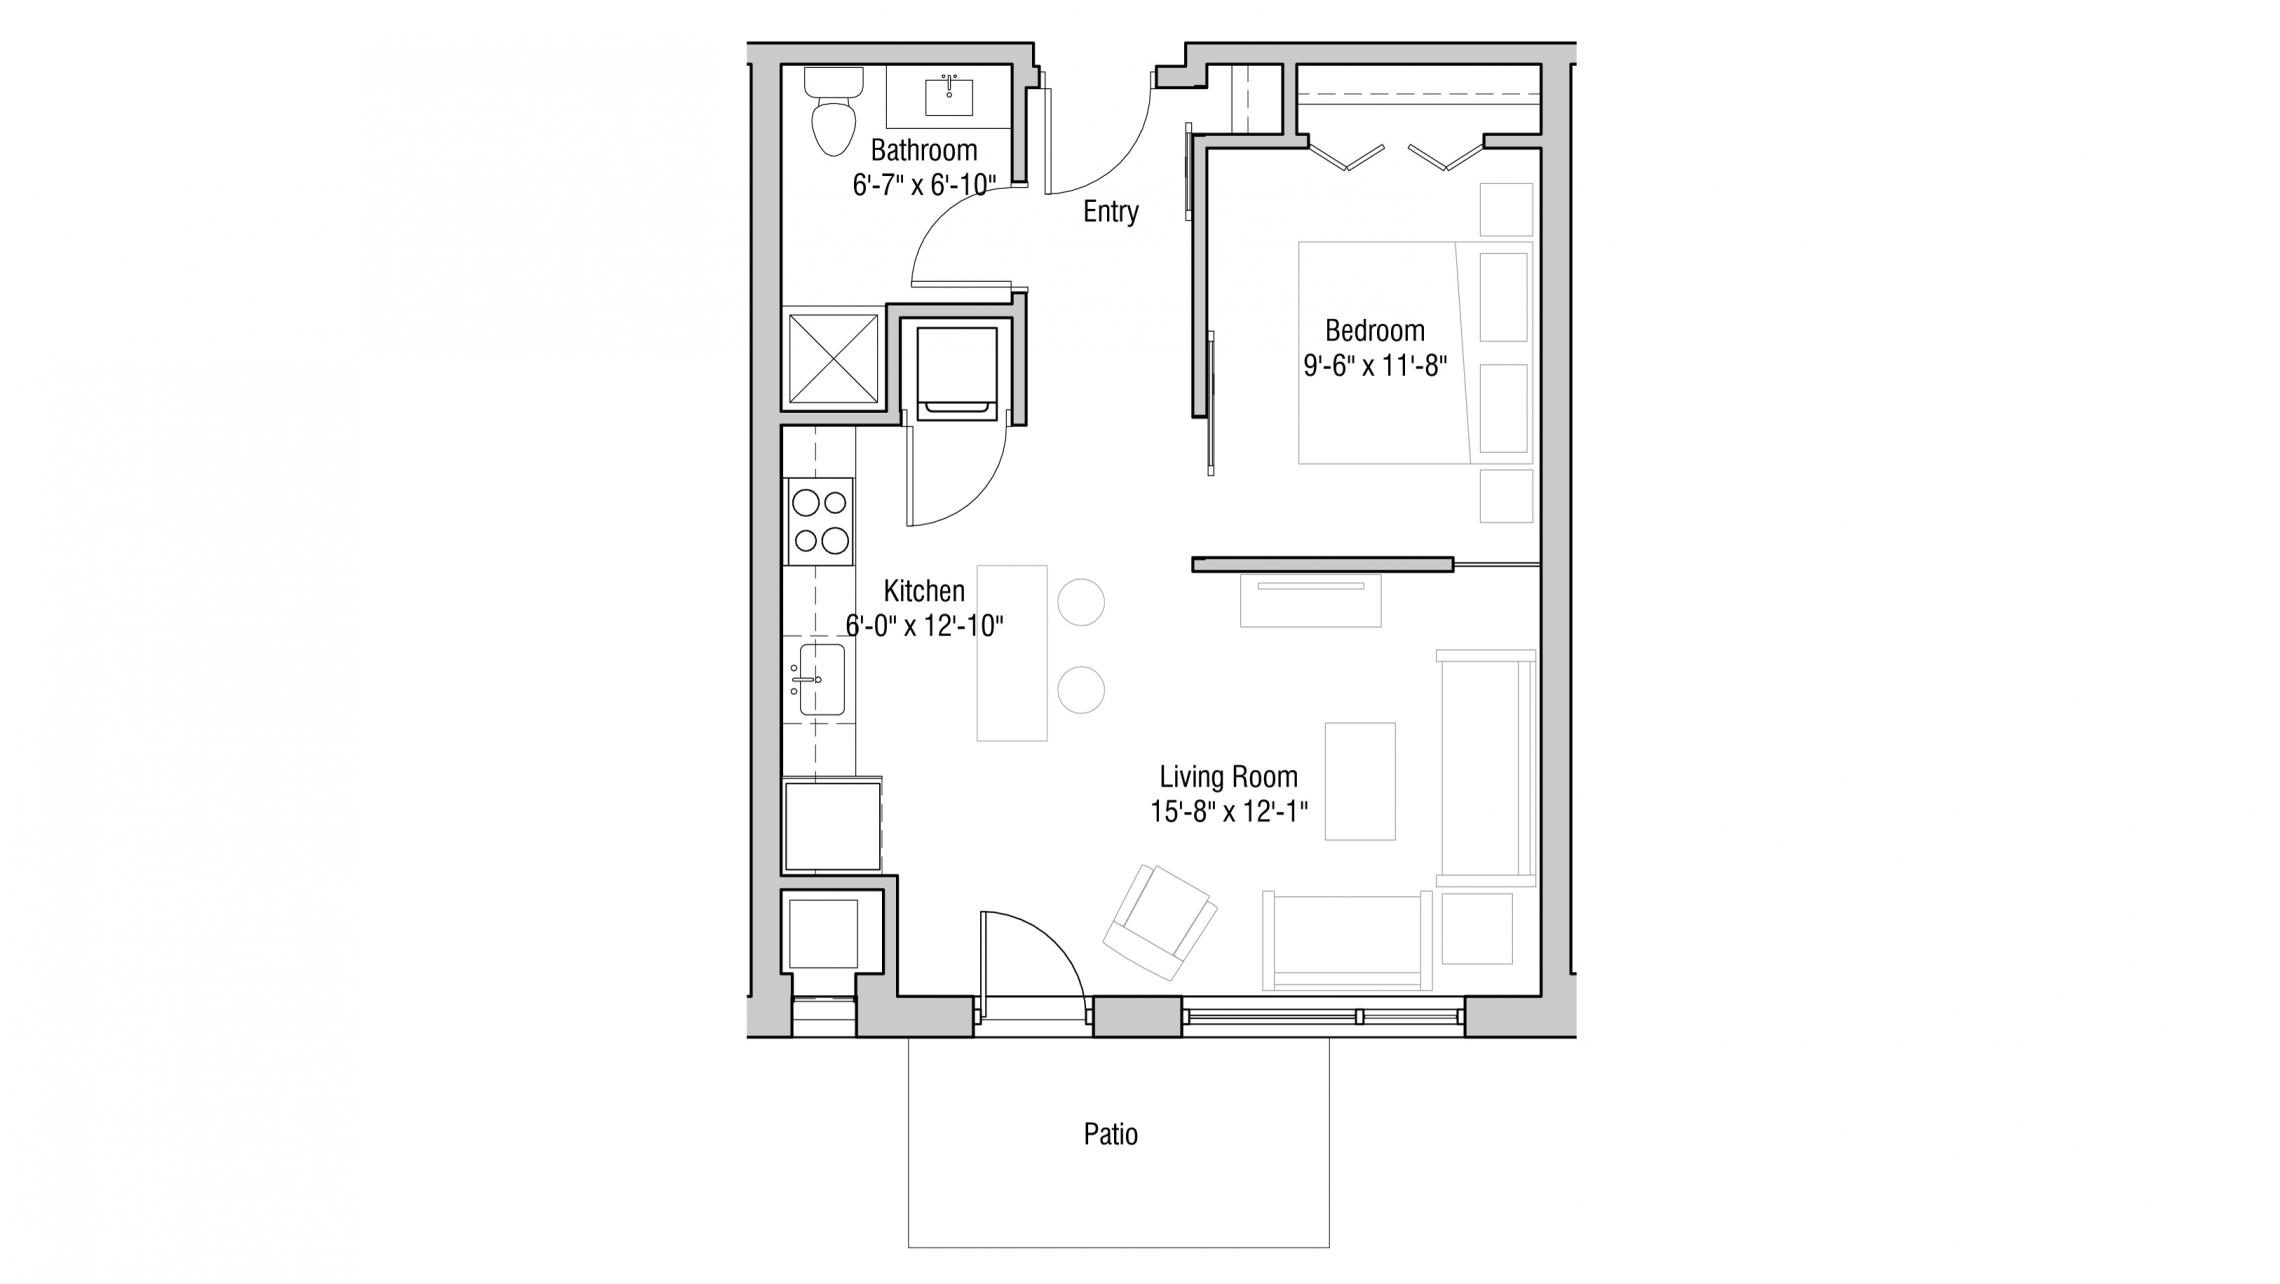 ULI Quarter Row 103 - One Bedroom, One Bathroom